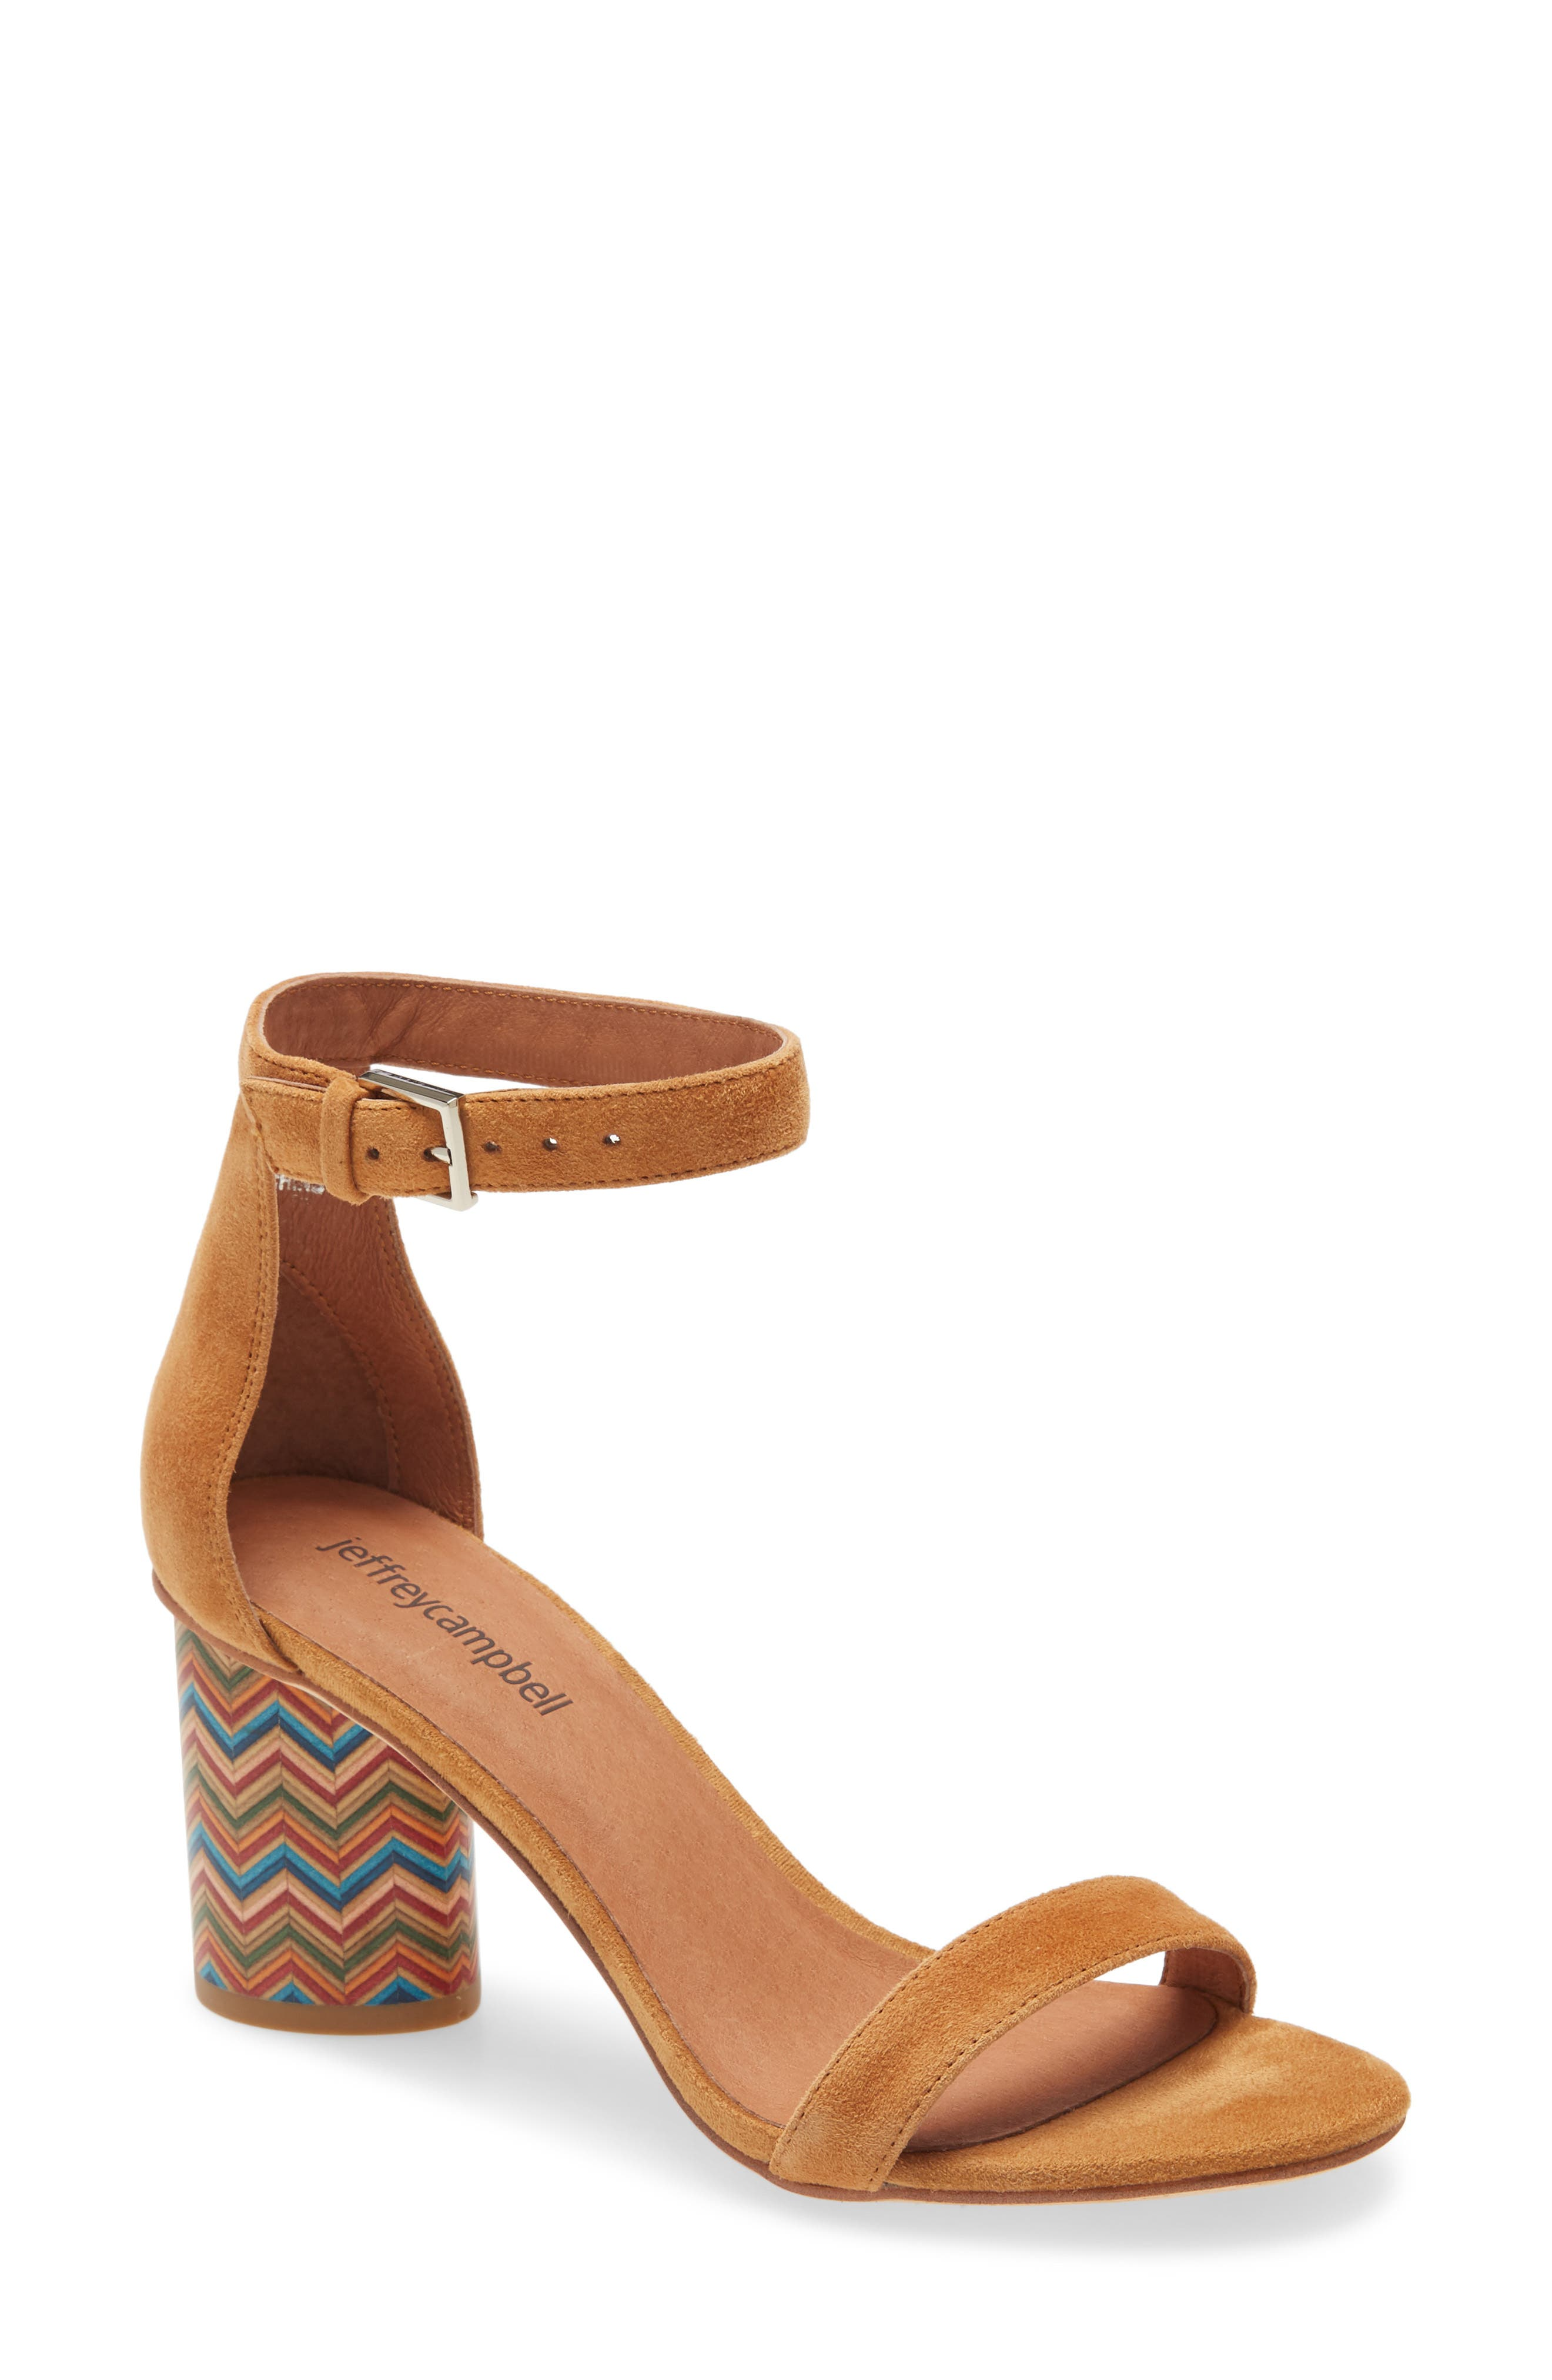 For a mod twist, a classic ankle-strap sandal provides bold pattern and color on its round stacked heel with a geometric design. Style Name: Jeffrey Campbell Purdy Statement Heel Sandal (Women). Style Number: 5805570. Available in stores.